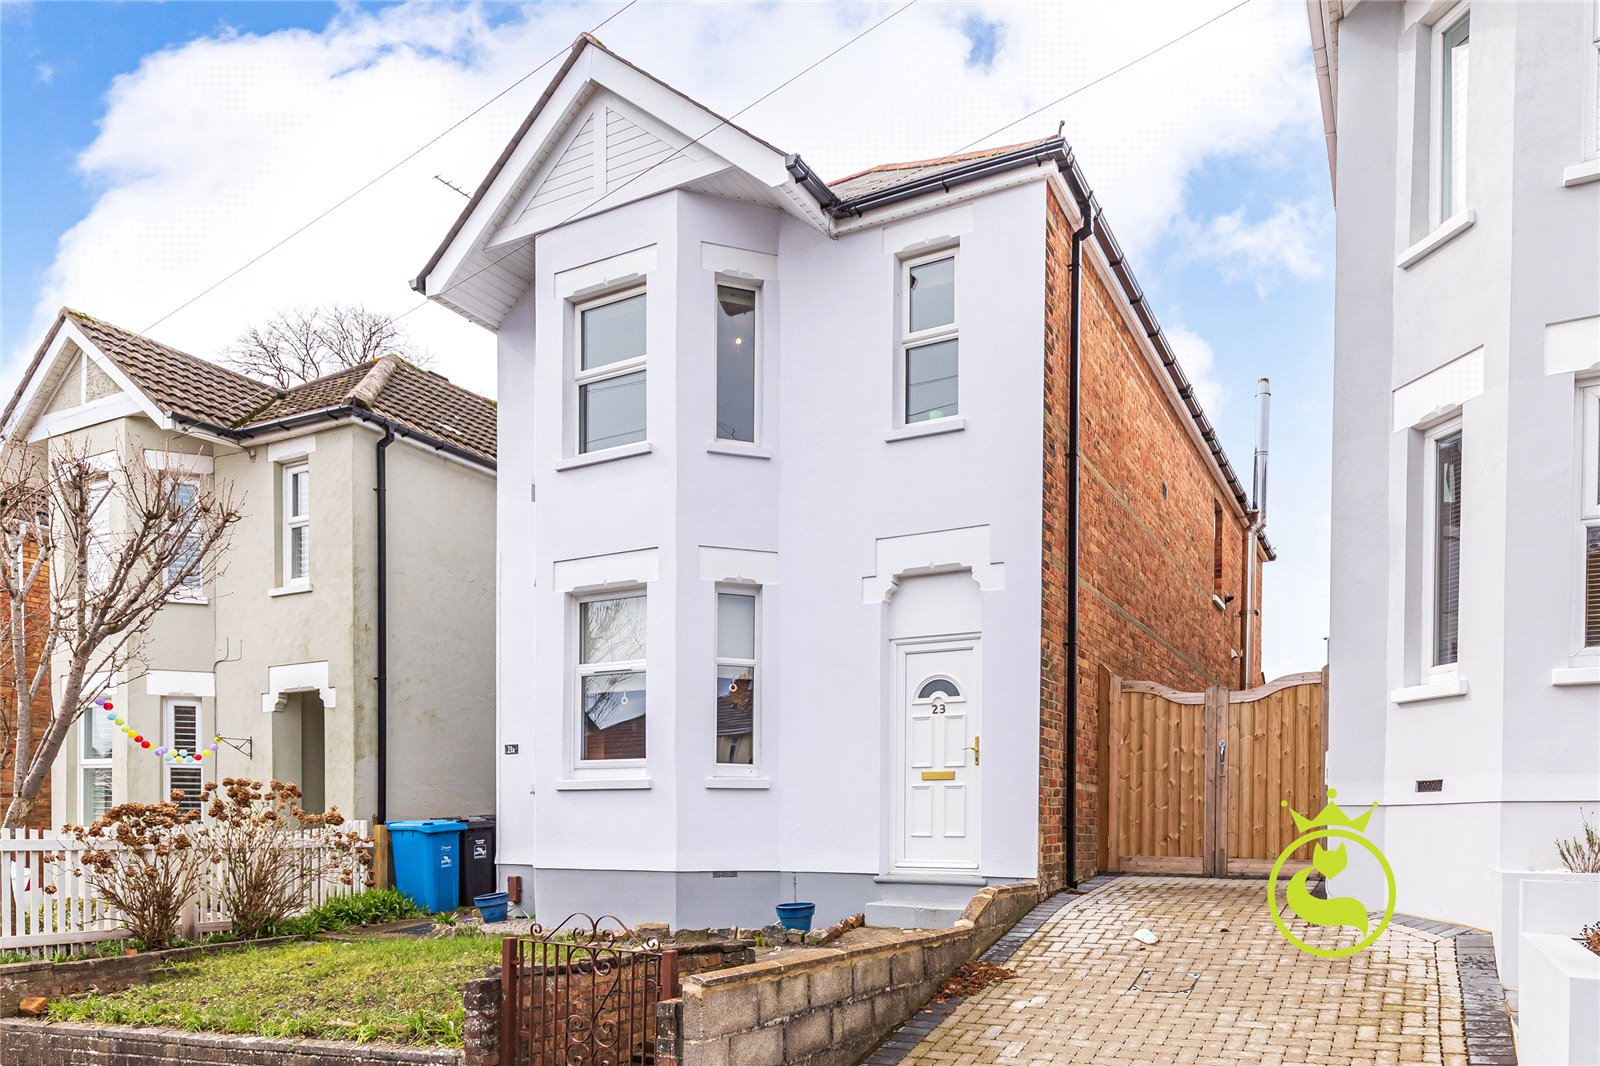 2 bed apartment for sale in Cranbrook Road, Parkstone, BH12